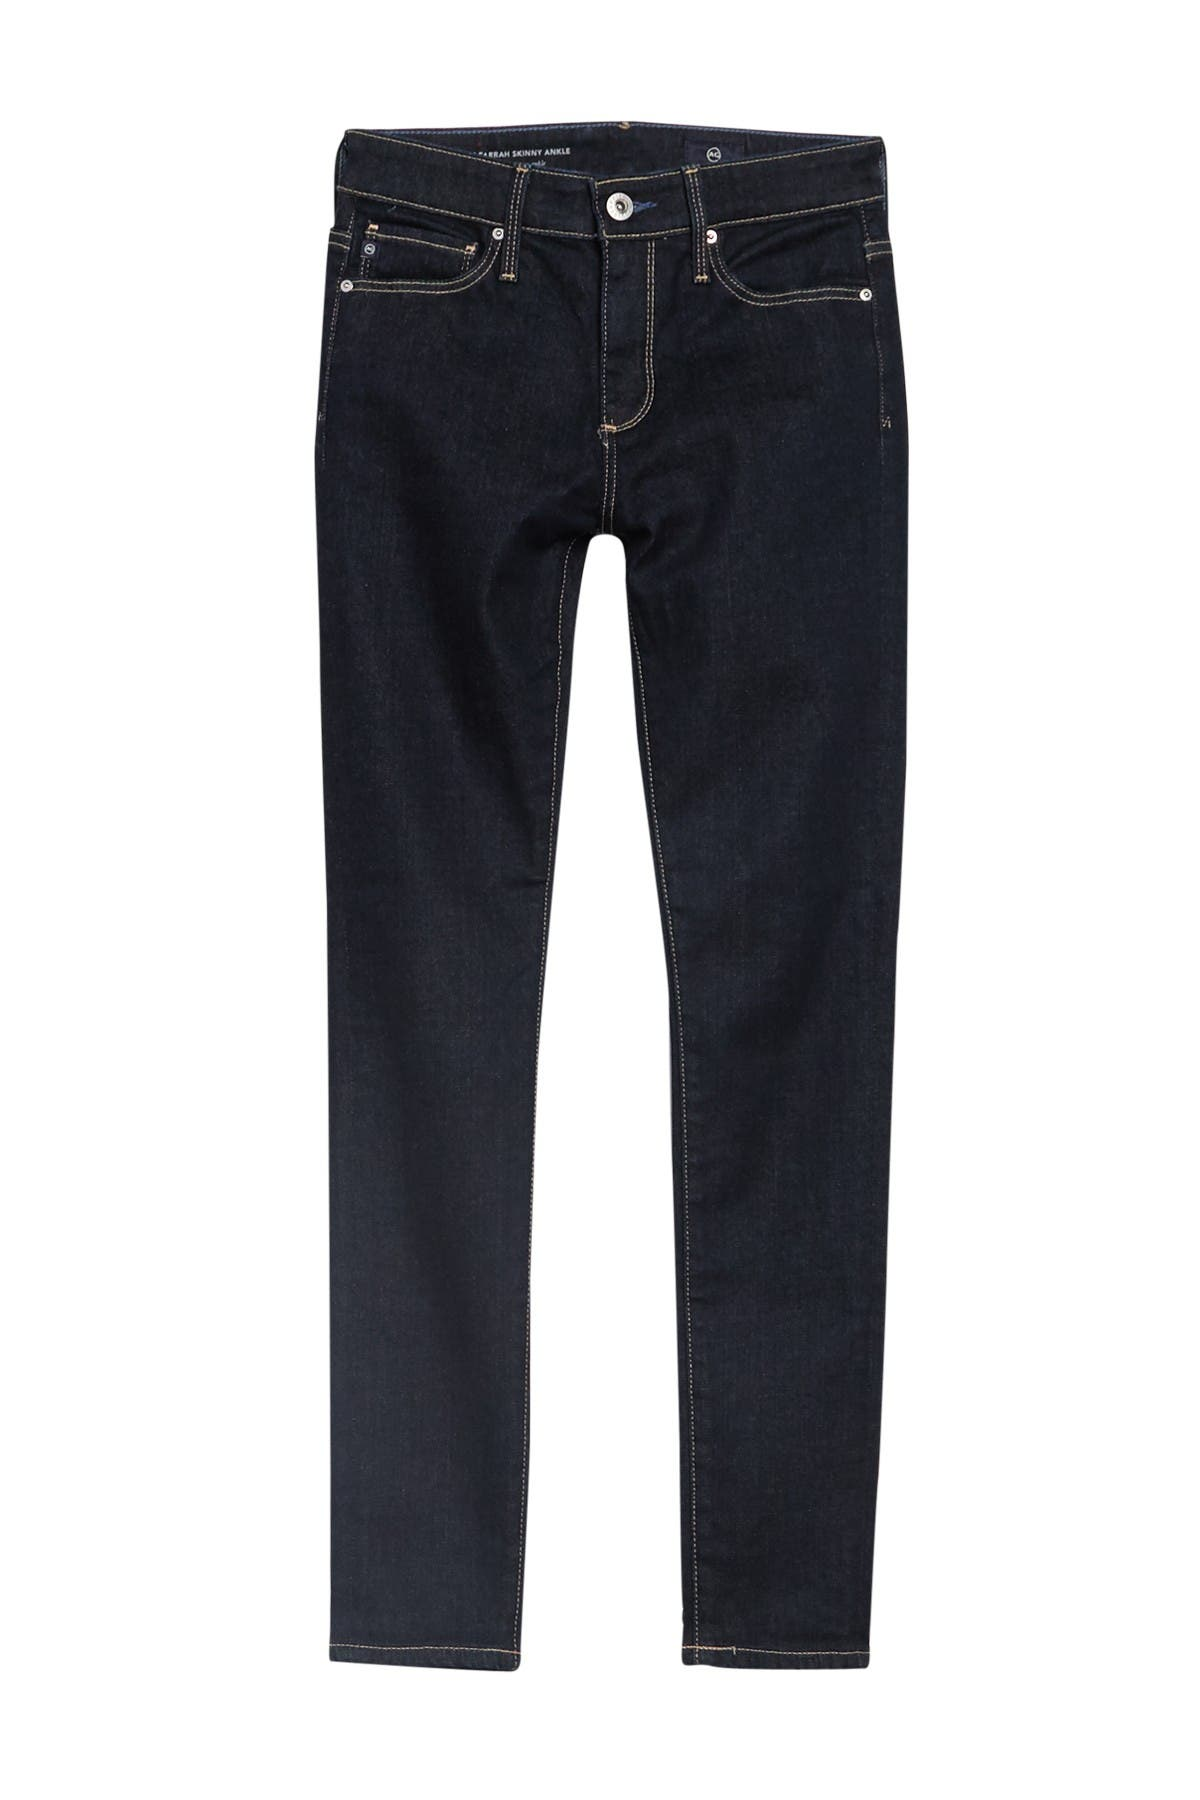 Image of AG High-Rise Skinny Ankle Jeans